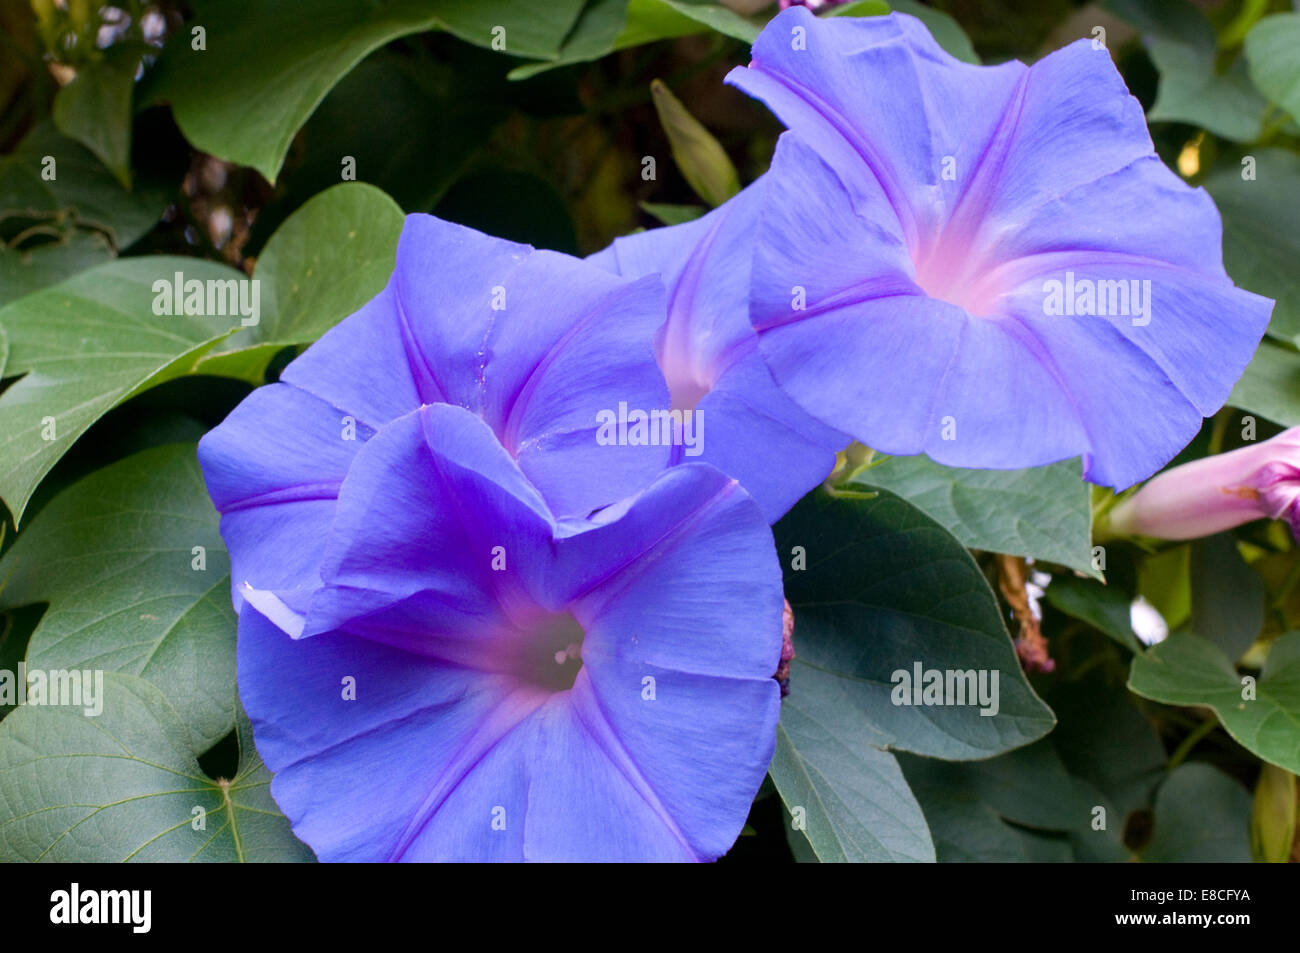 Convolvulus arvensis (field bindweed) is a species of bindweed morning glory family (Convolvulaceae), native to - Stock Image